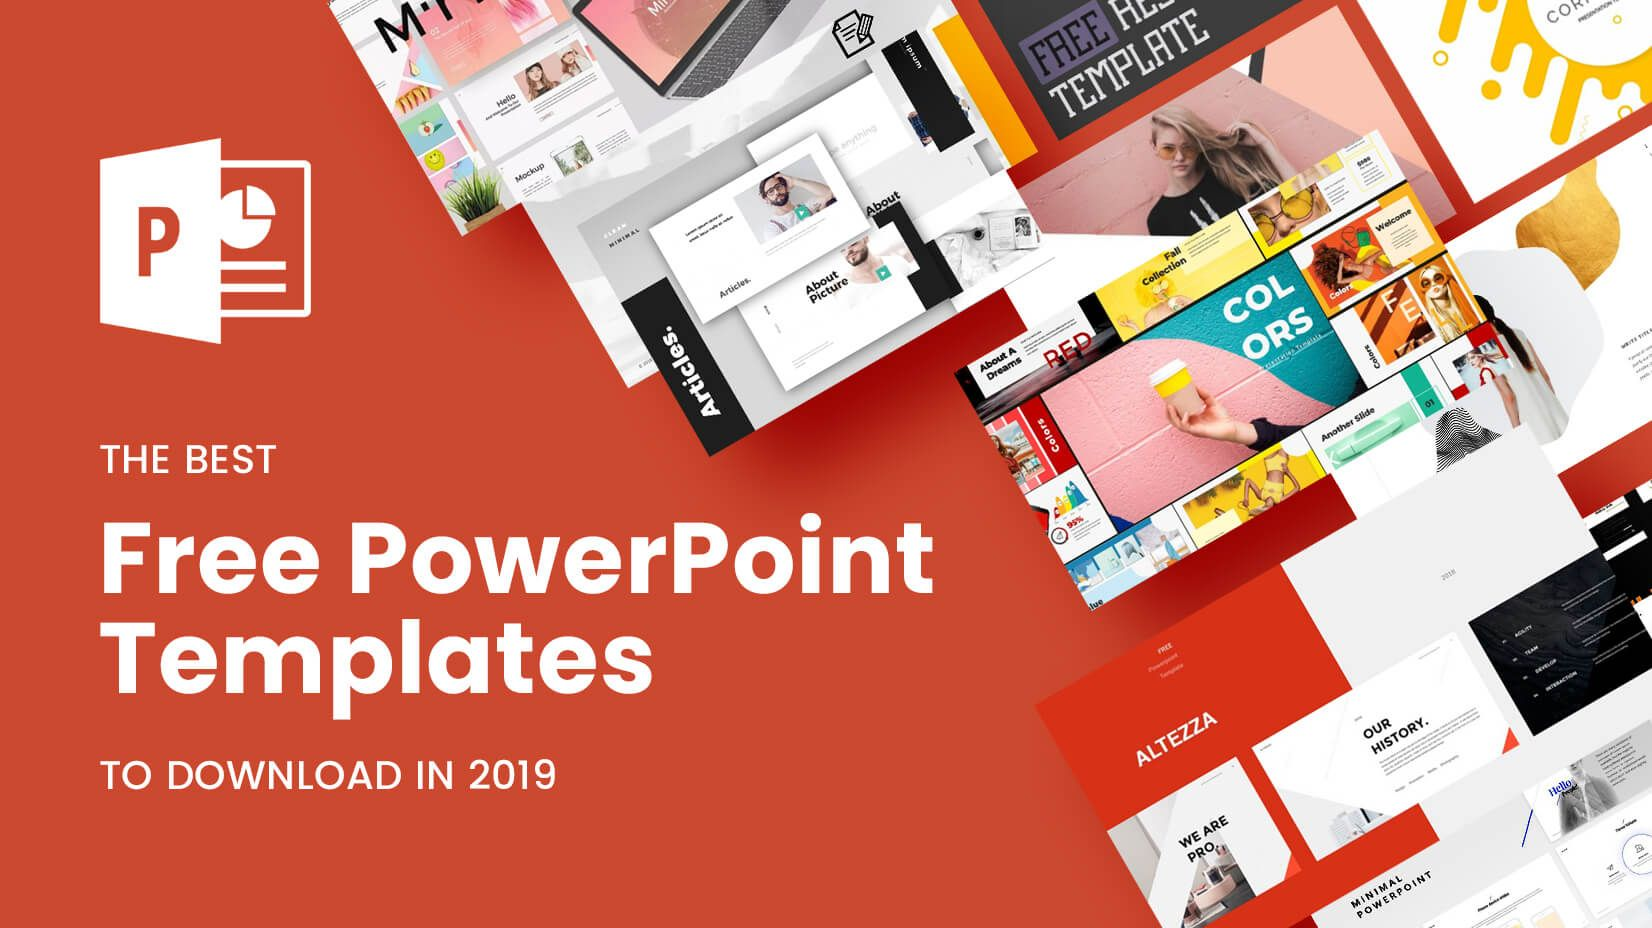 The Best Free Powerpoint Templates To Download In 2019 Inside Powerpoint In 2020 Free Powerpoint Templates Download Presentation Template Free Powerpoint Template Free